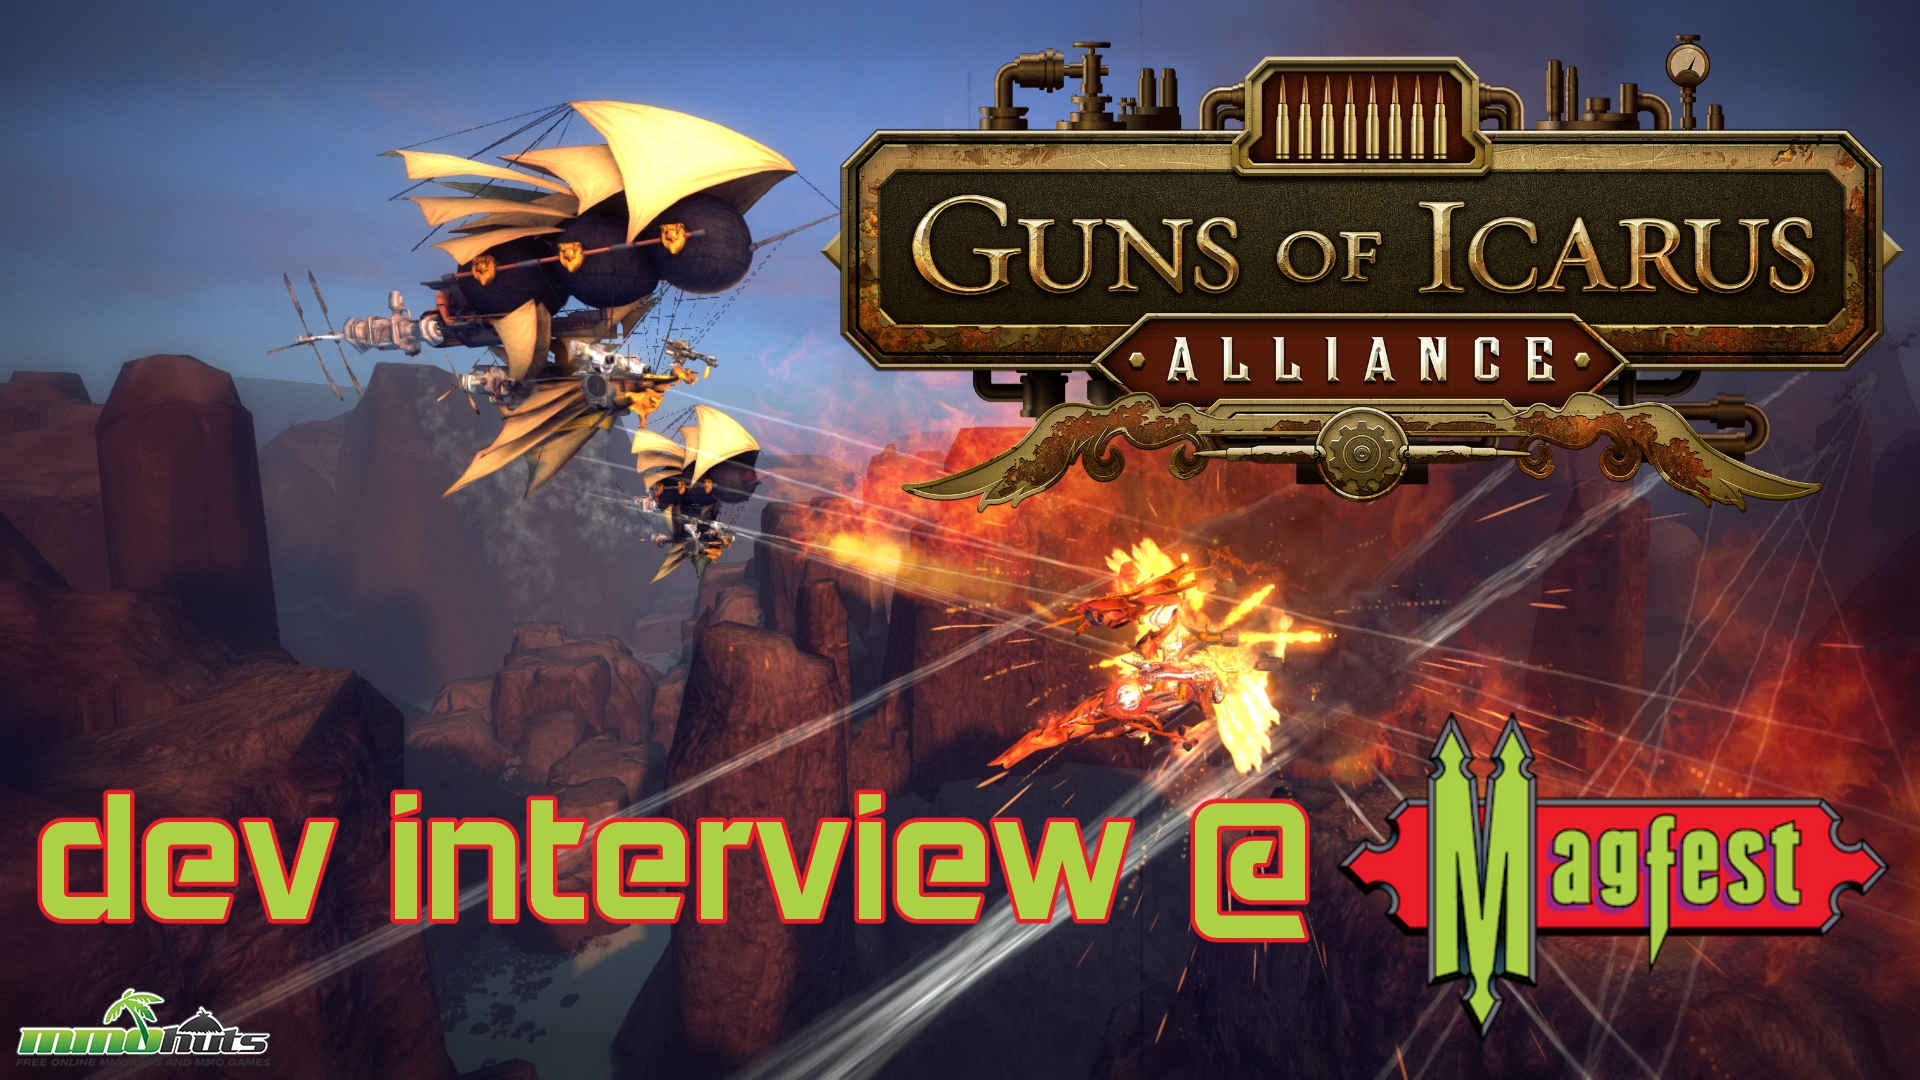 Guns of Icarus Alliance @ MAGFest 2017 Interview